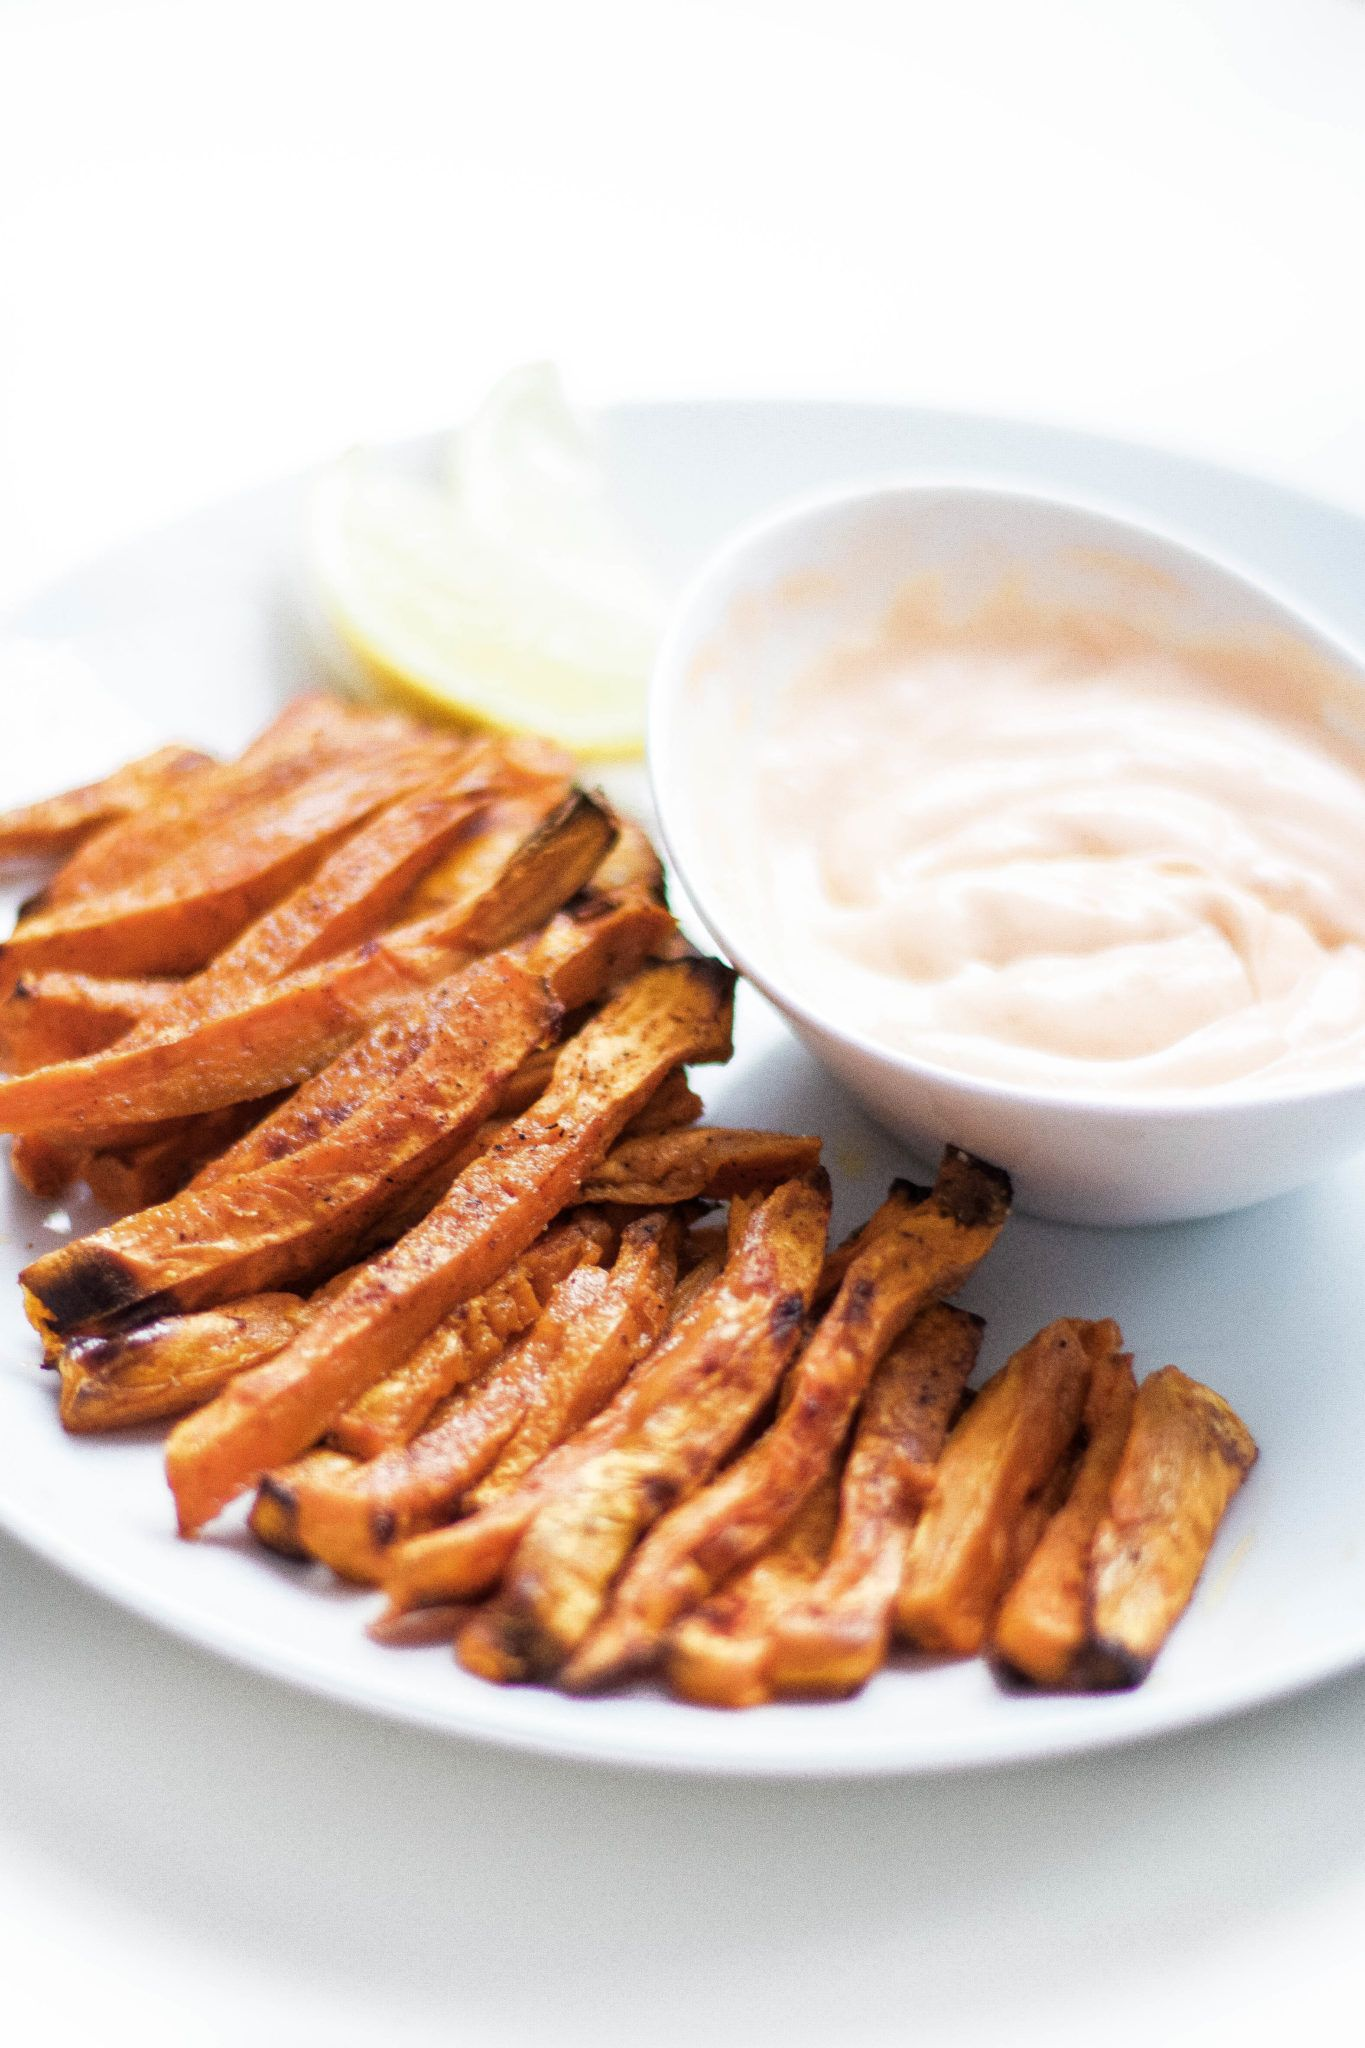 Crispy Oven-Baked Sweet Potato Fries (GF, Vegan, P